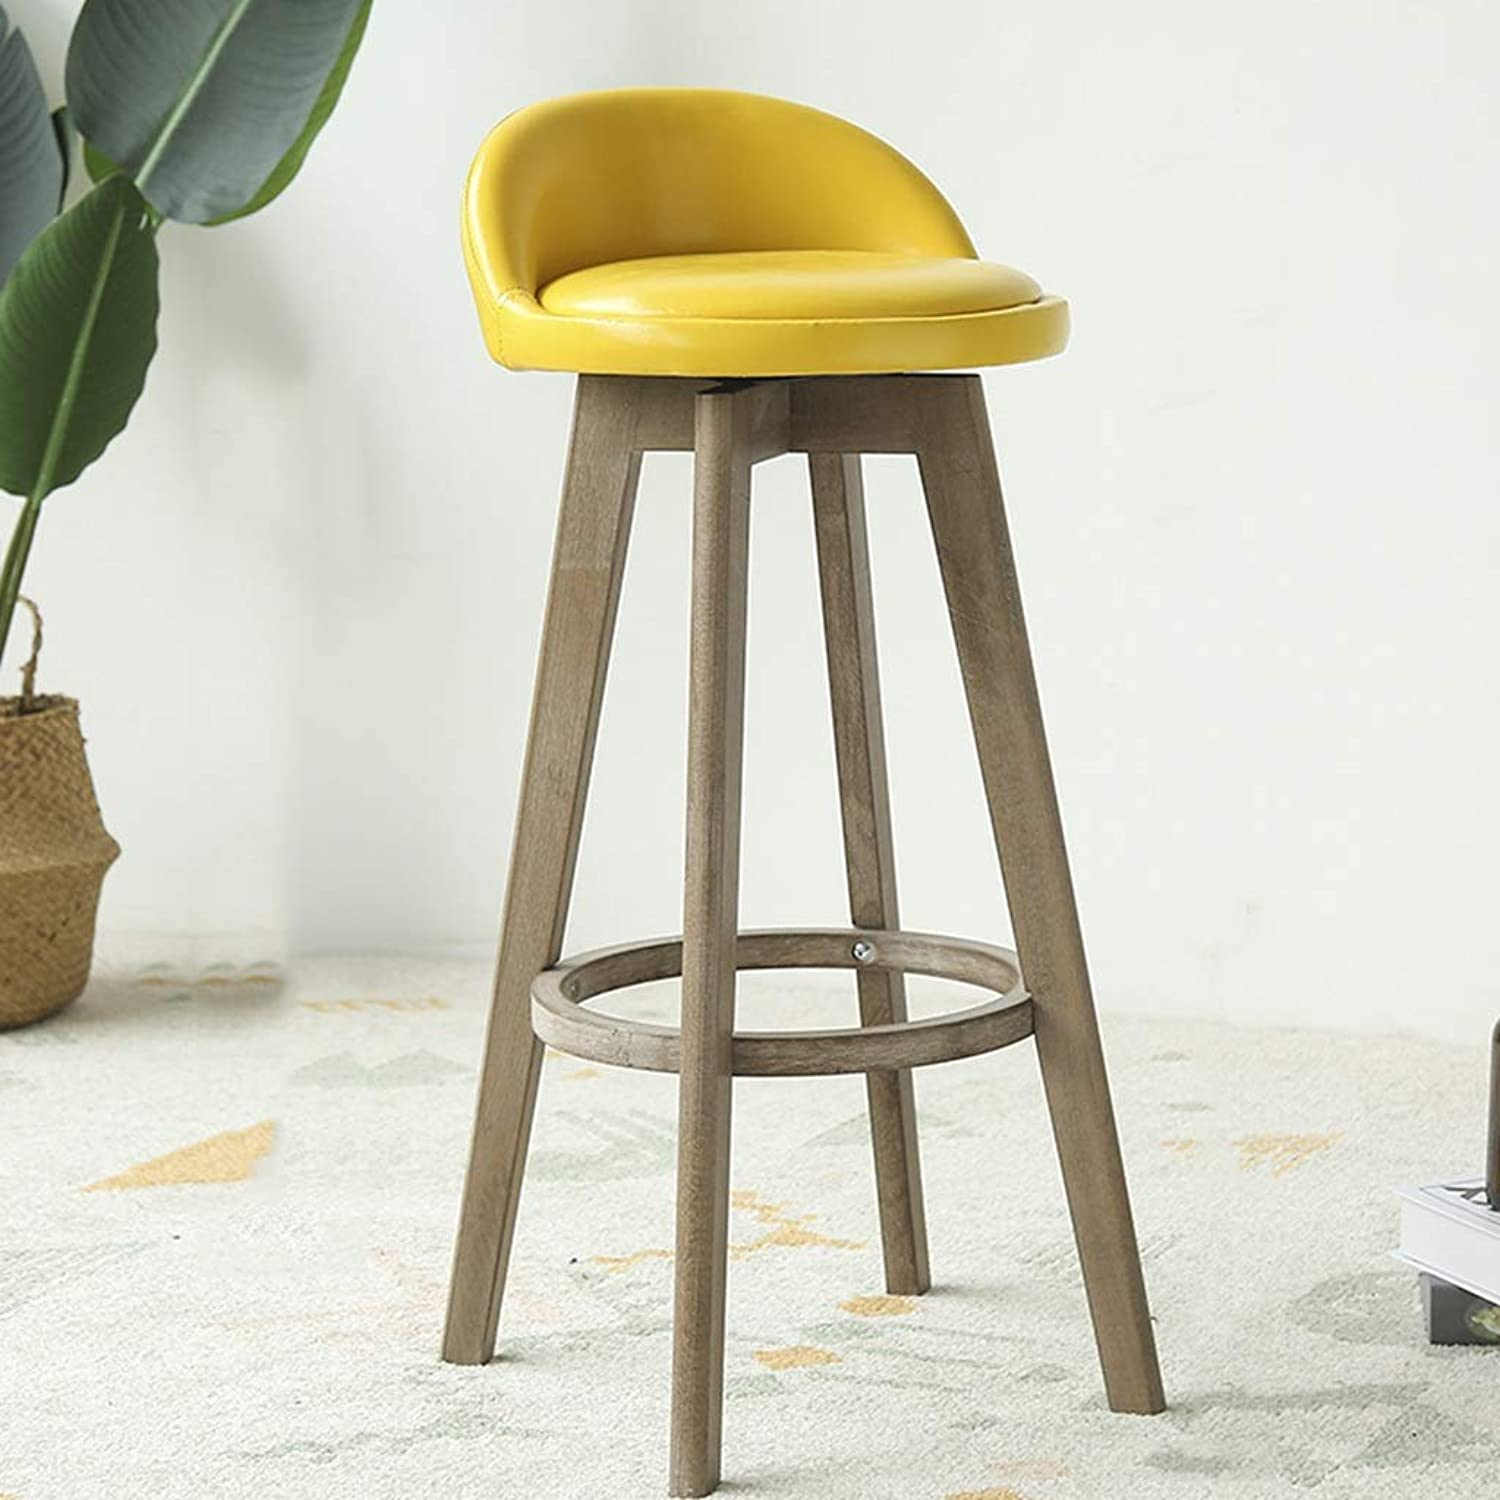 Balcony Chair, with Backrest redatable Wood Bar Chair Tea Shop Coffee Shop Bar Stool Household Kitchen Dining Table Chair (color   Yellow)